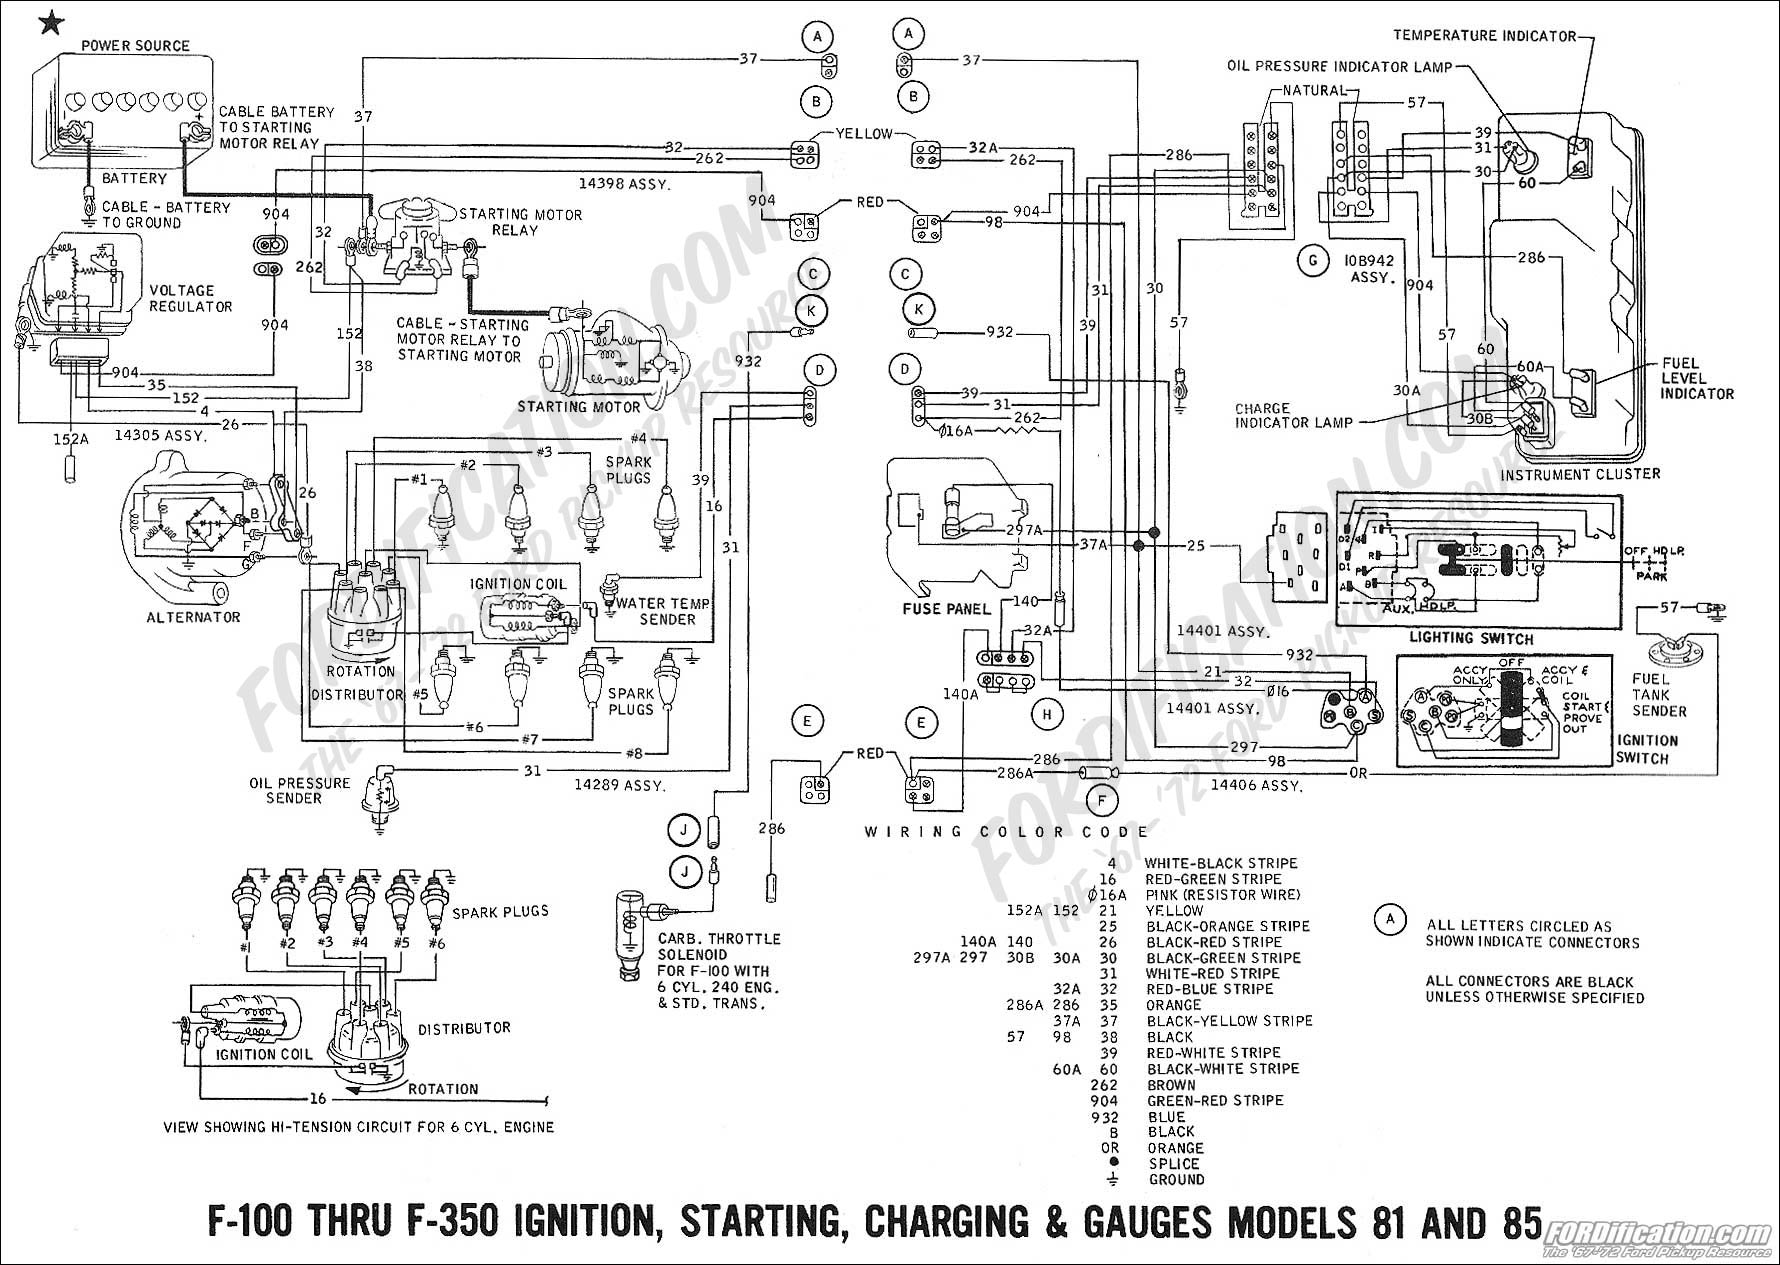 Ford F100 Wiring Diagrams - 2.xeghaqqt.chrisblacksbio.info •  Chevy C Engine Bay Wiring Diagram on 85 chevy wiring diagram, 1985 chevy c10 engine, 1985 chevrolet truck diagram, 1985 chevy fuse box diagram, 1985 chevy truck fuse box, 1985 chevy truck wiring harness, 1985 chevy suburban belt diagram, 1985 dodge dakota wiring diagram, 1985 chevy c10 transmission, 1999 mazda 626 wiring diagram, 1985 chevy c10 wheels, 1998 chevy venture wiring diagram, 1985 chevy c10 regulator, 1985 chevy c10 seats, 1985 chevy c10 electrical, 1985 chevy c10 carburetor, 63 chevy wiring diagram, 1985 chevy c10 frame, 1985 chevrolet wiring diagram, 1985 chevy c10 fan belt,